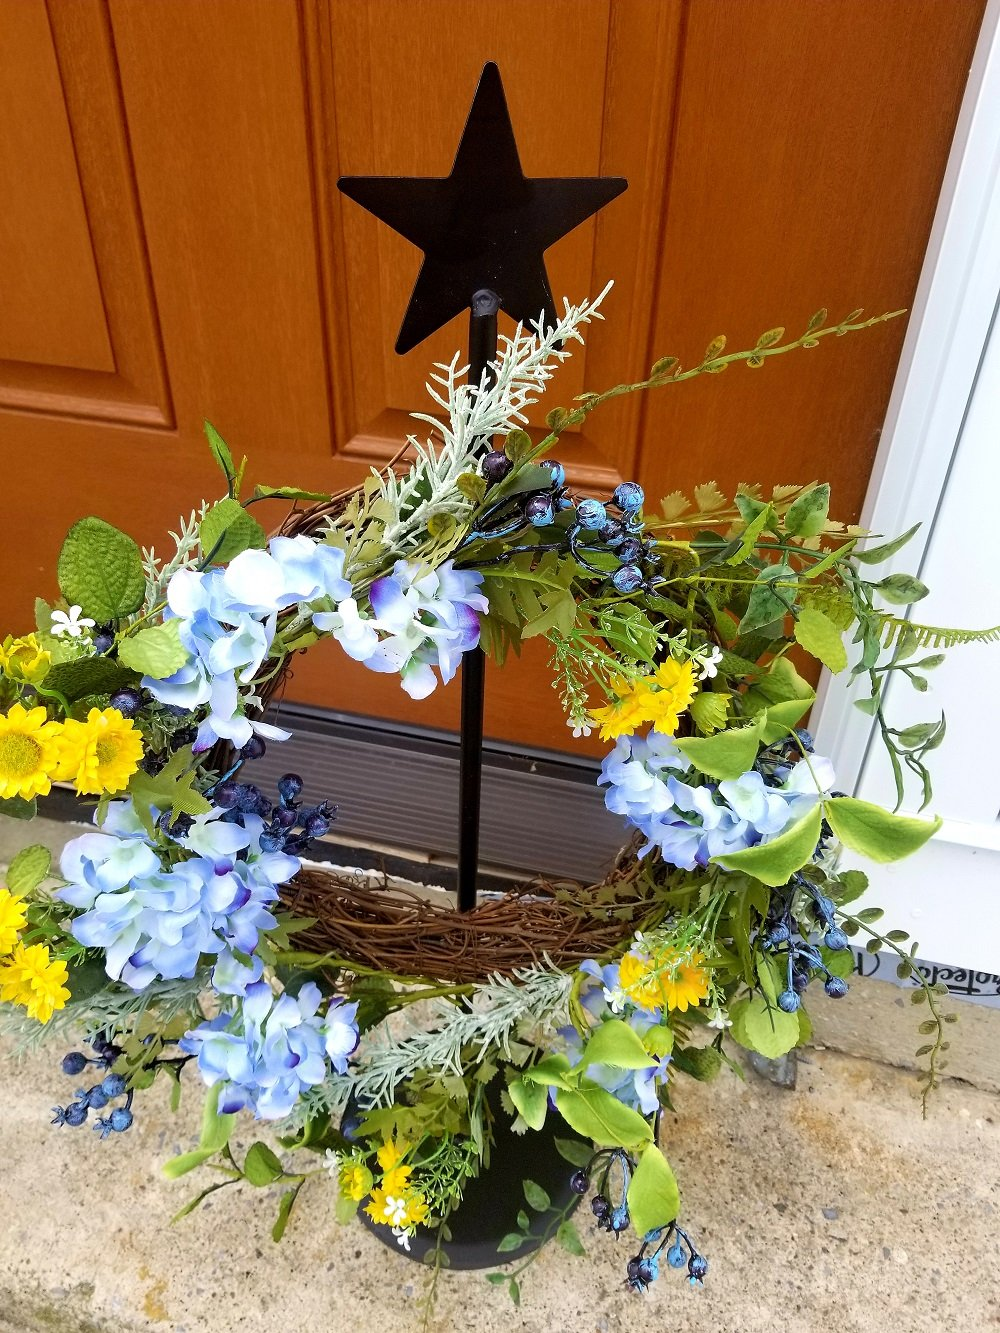 Wrought Iron Standing Wreath Hanger With Star - Hand Made By Amish Of Lancaster County PA. - Wreath Not Included by Hand Crafted & American Made!